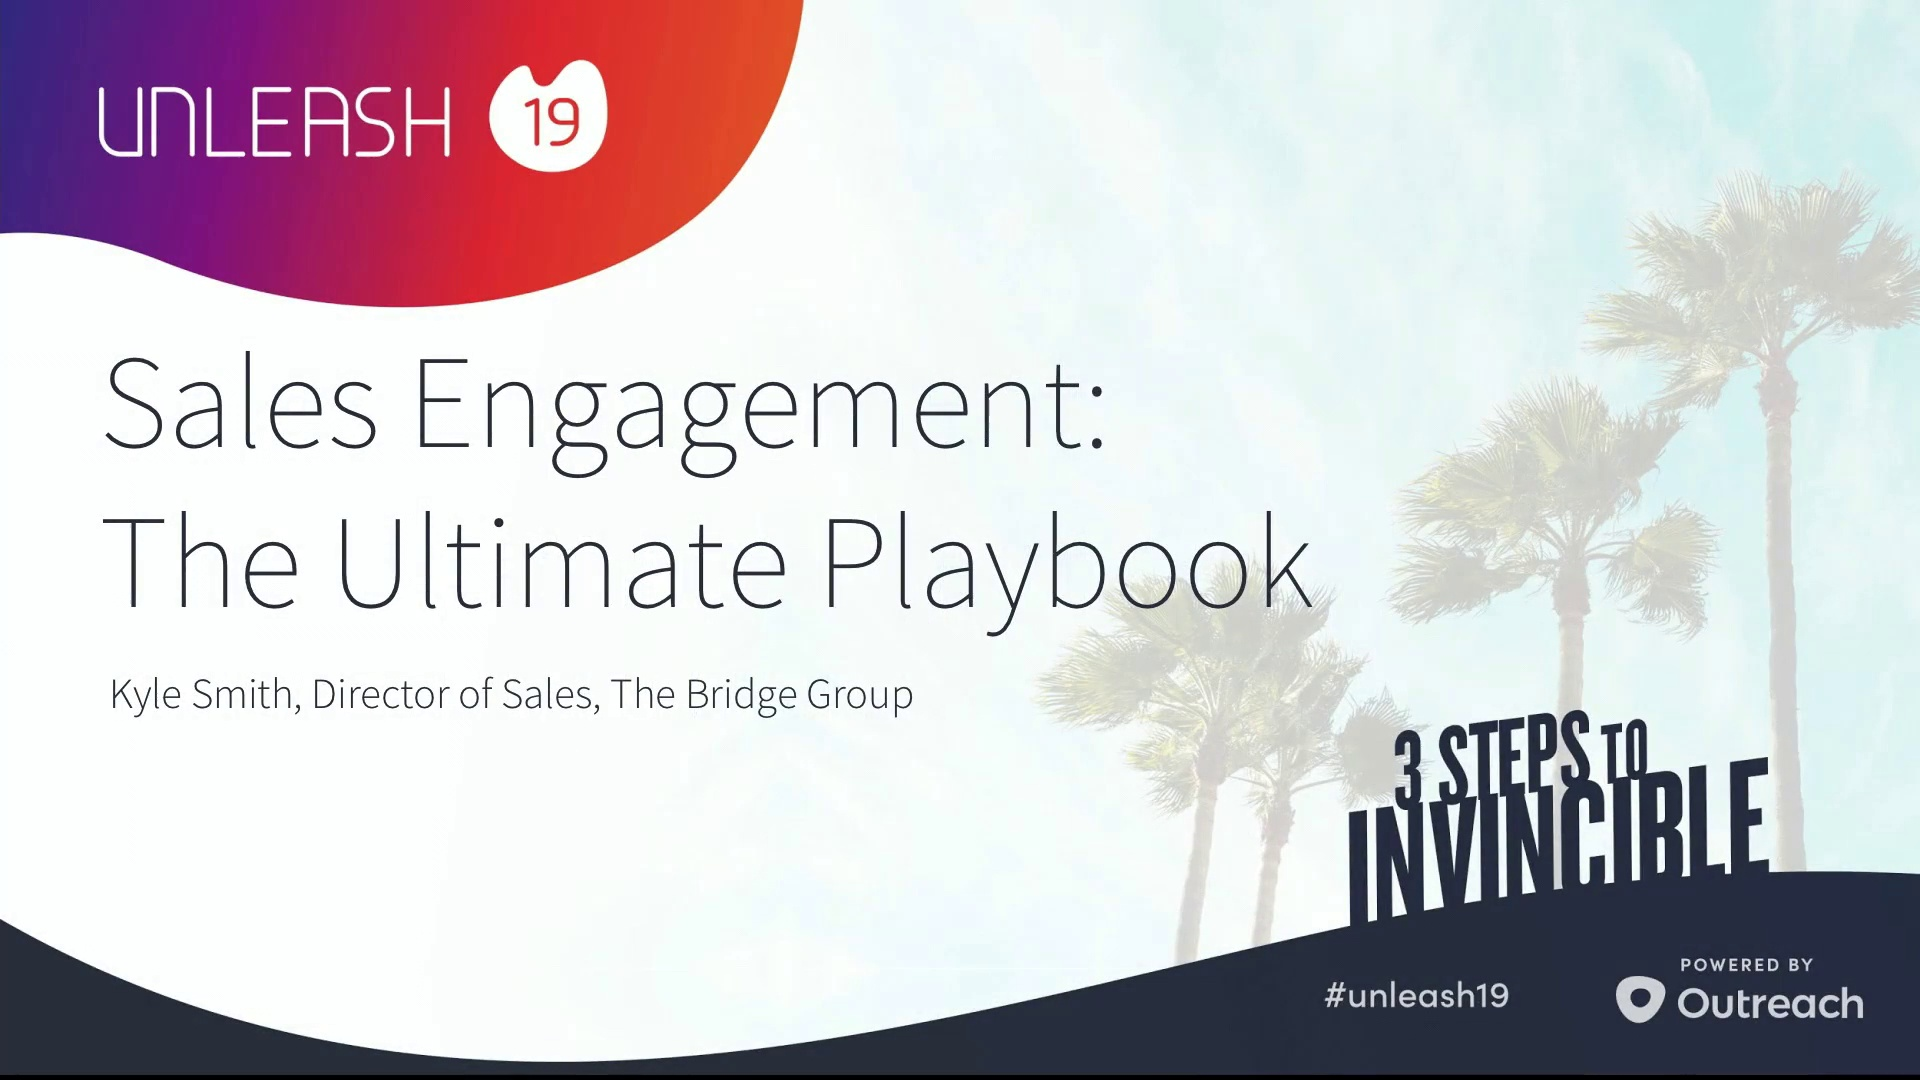 Sales Engagement The Ultimate Playbook - Kyle Smith